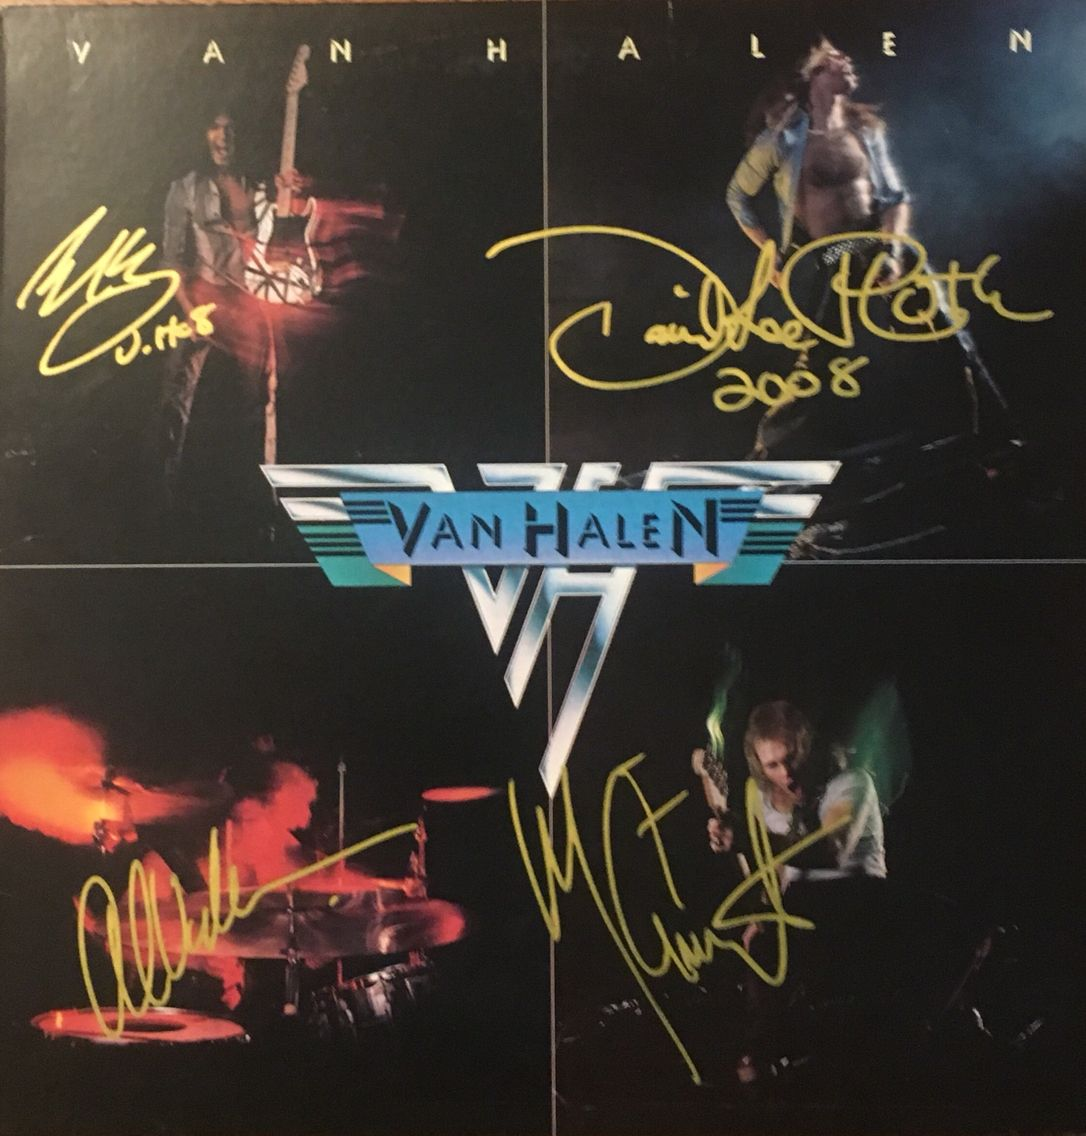 Van Halen 1st Album Released February 10 1978 Selling More Than 10 Million Copies In The United States Signed B Rock Album Covers Van Halen Concert Posters